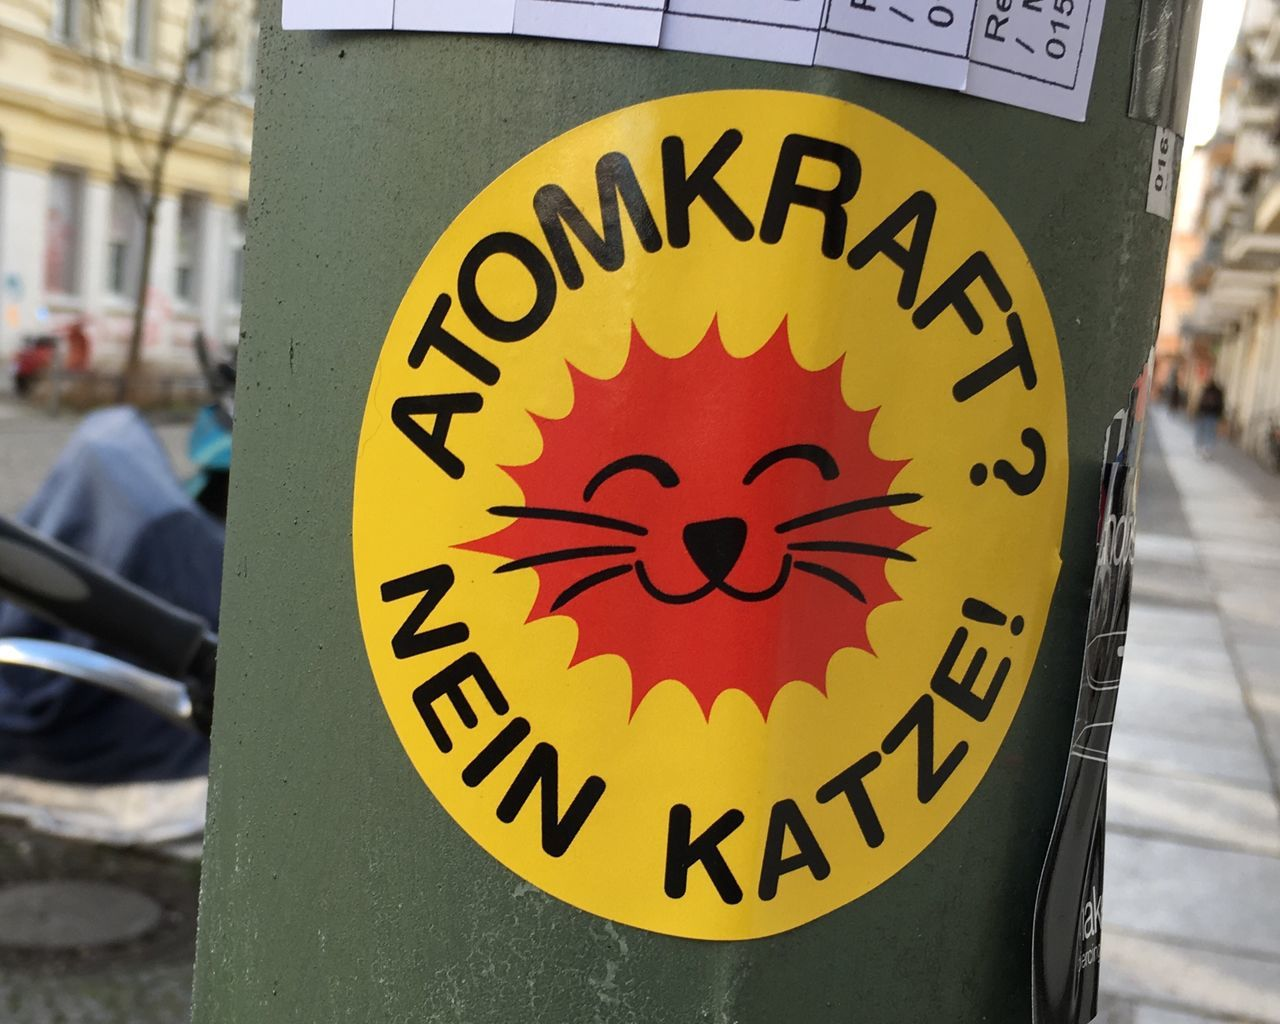 Atomkraft ? Nein Katze Sticker Protest Red Yellow Green